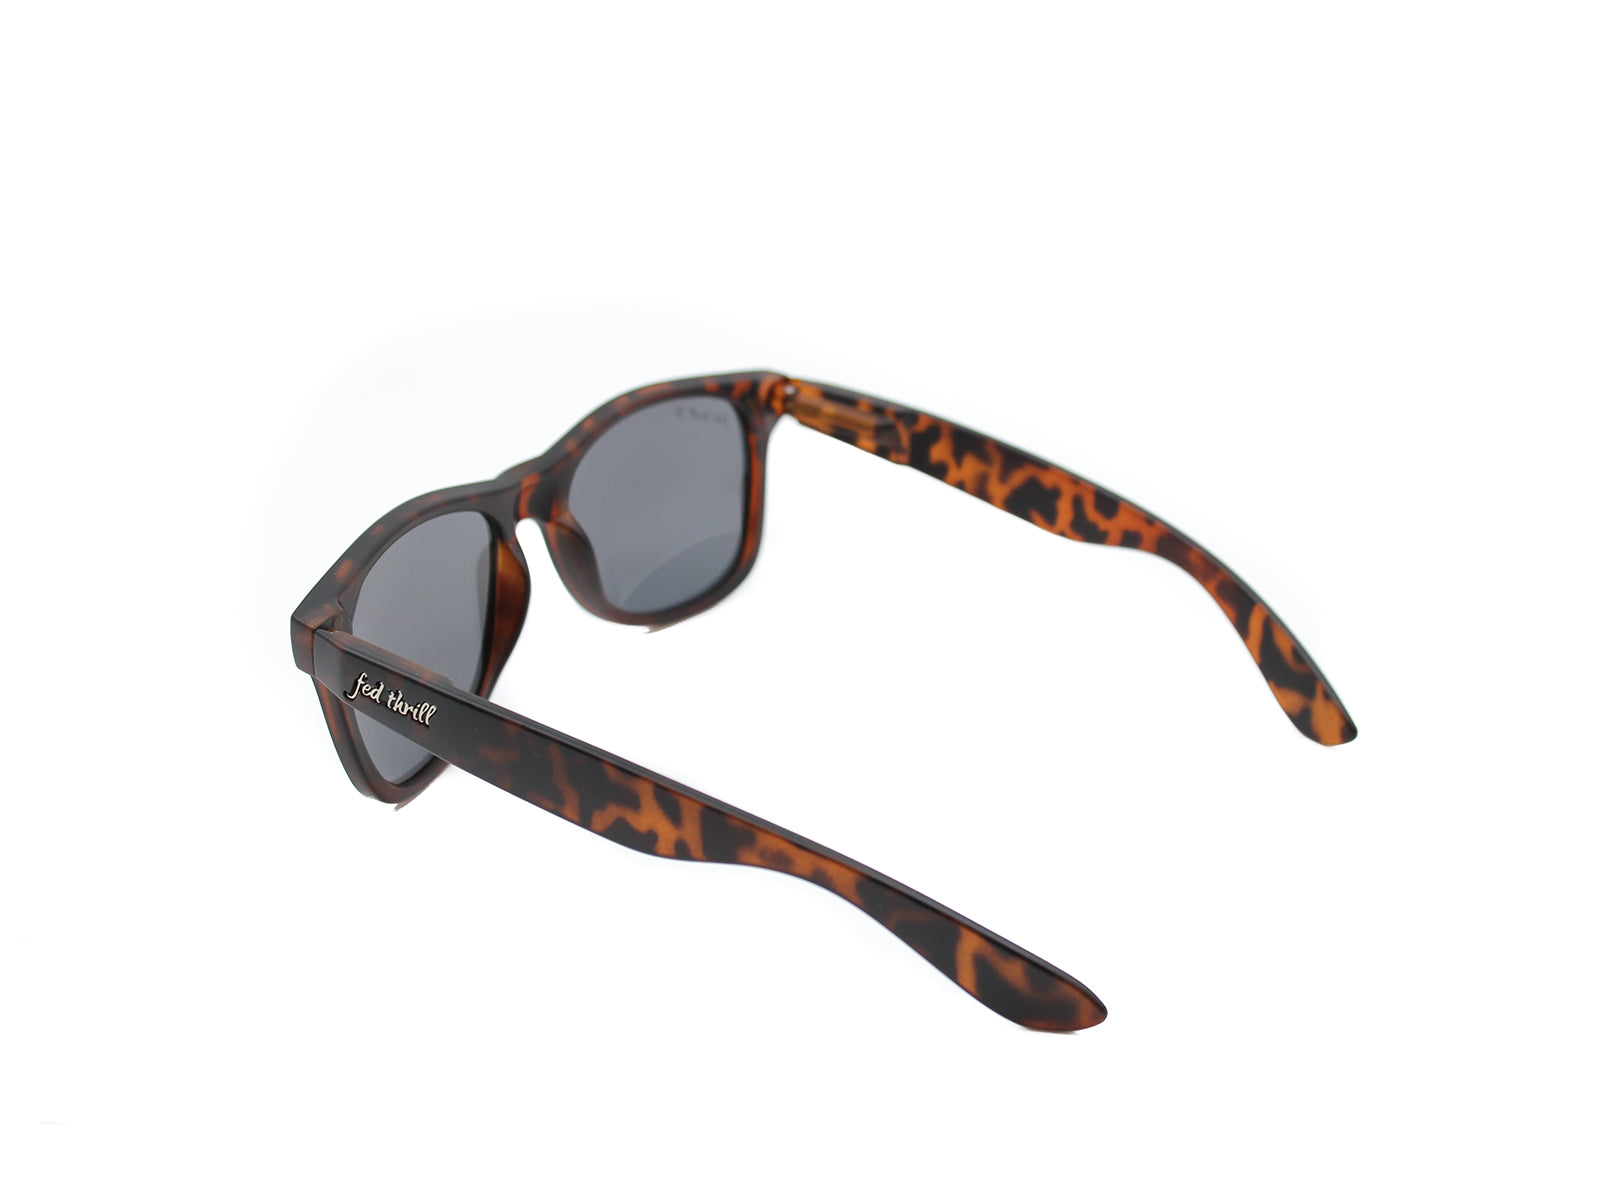 Fultons - Slates: Matte Tortoise / Mirrored Smoke Polarized